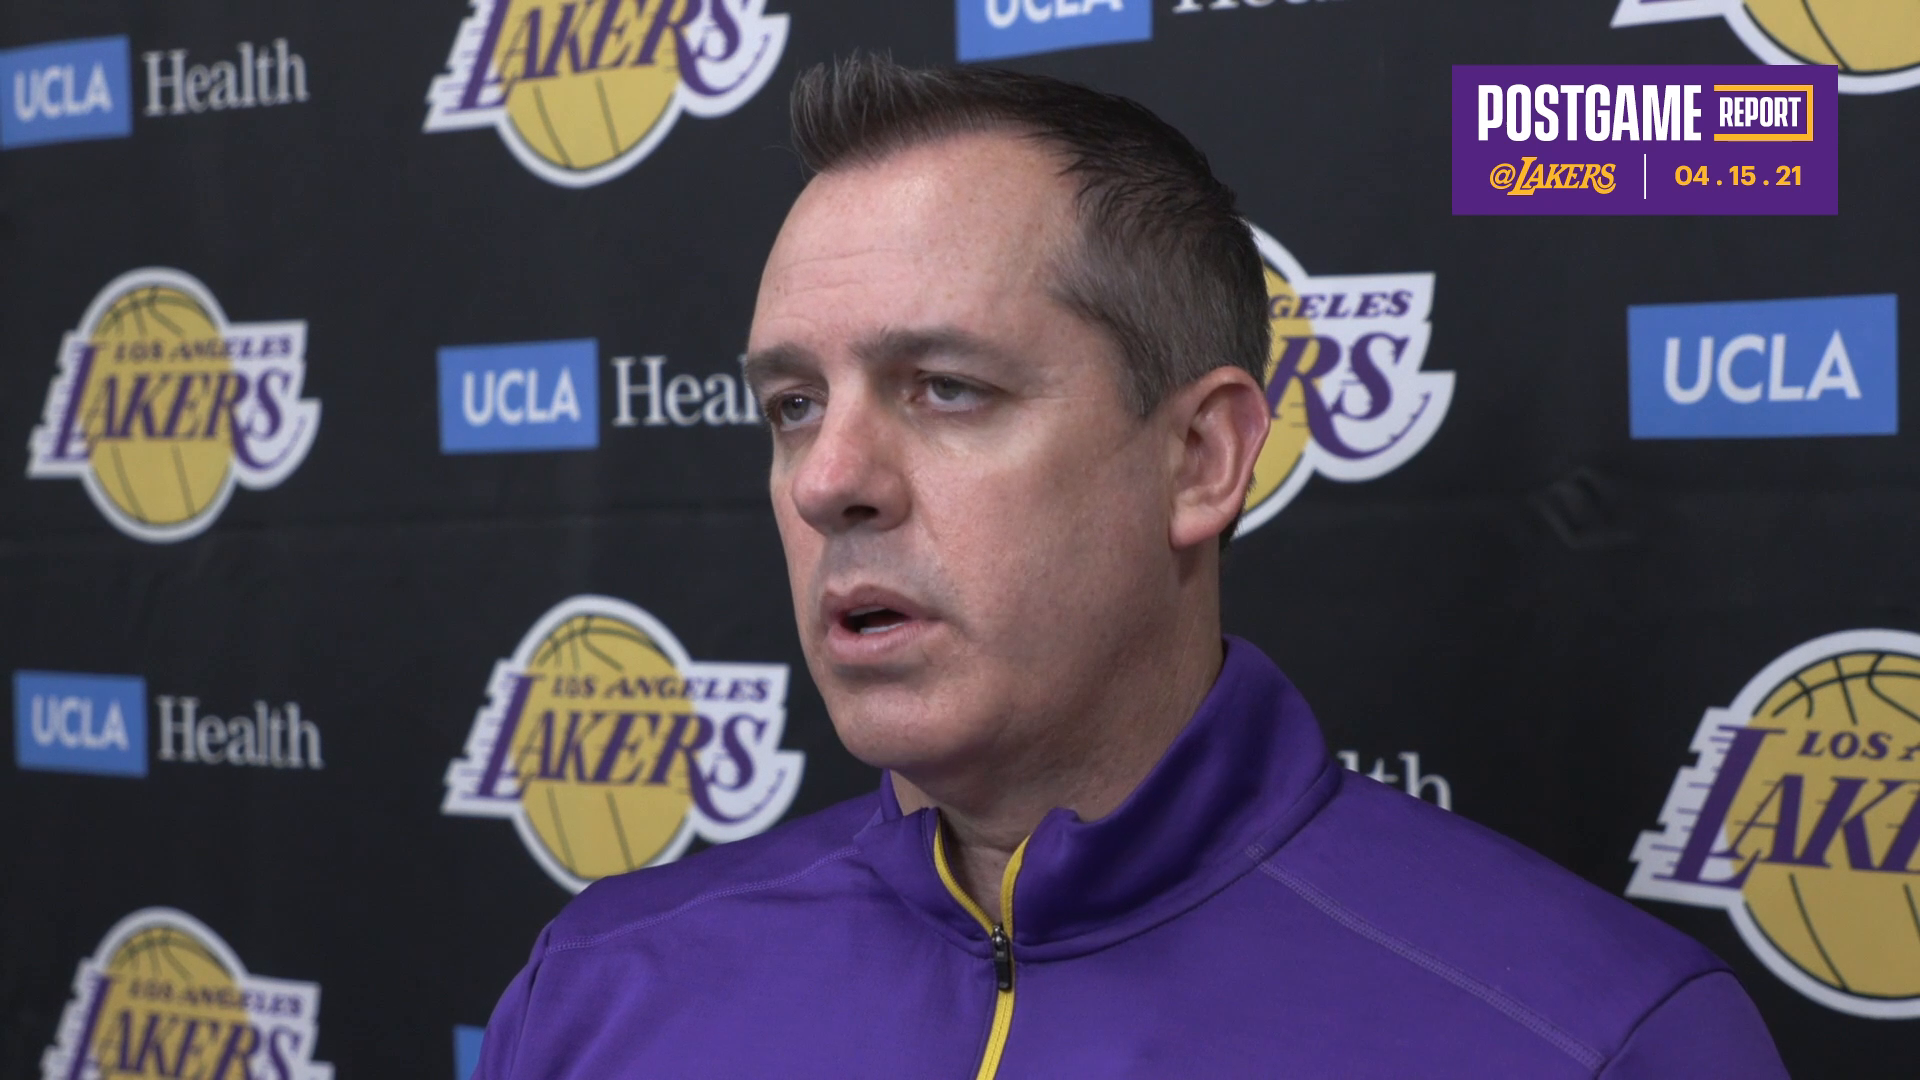 Lakers Postgame: Frank Vogel (4/15/21)